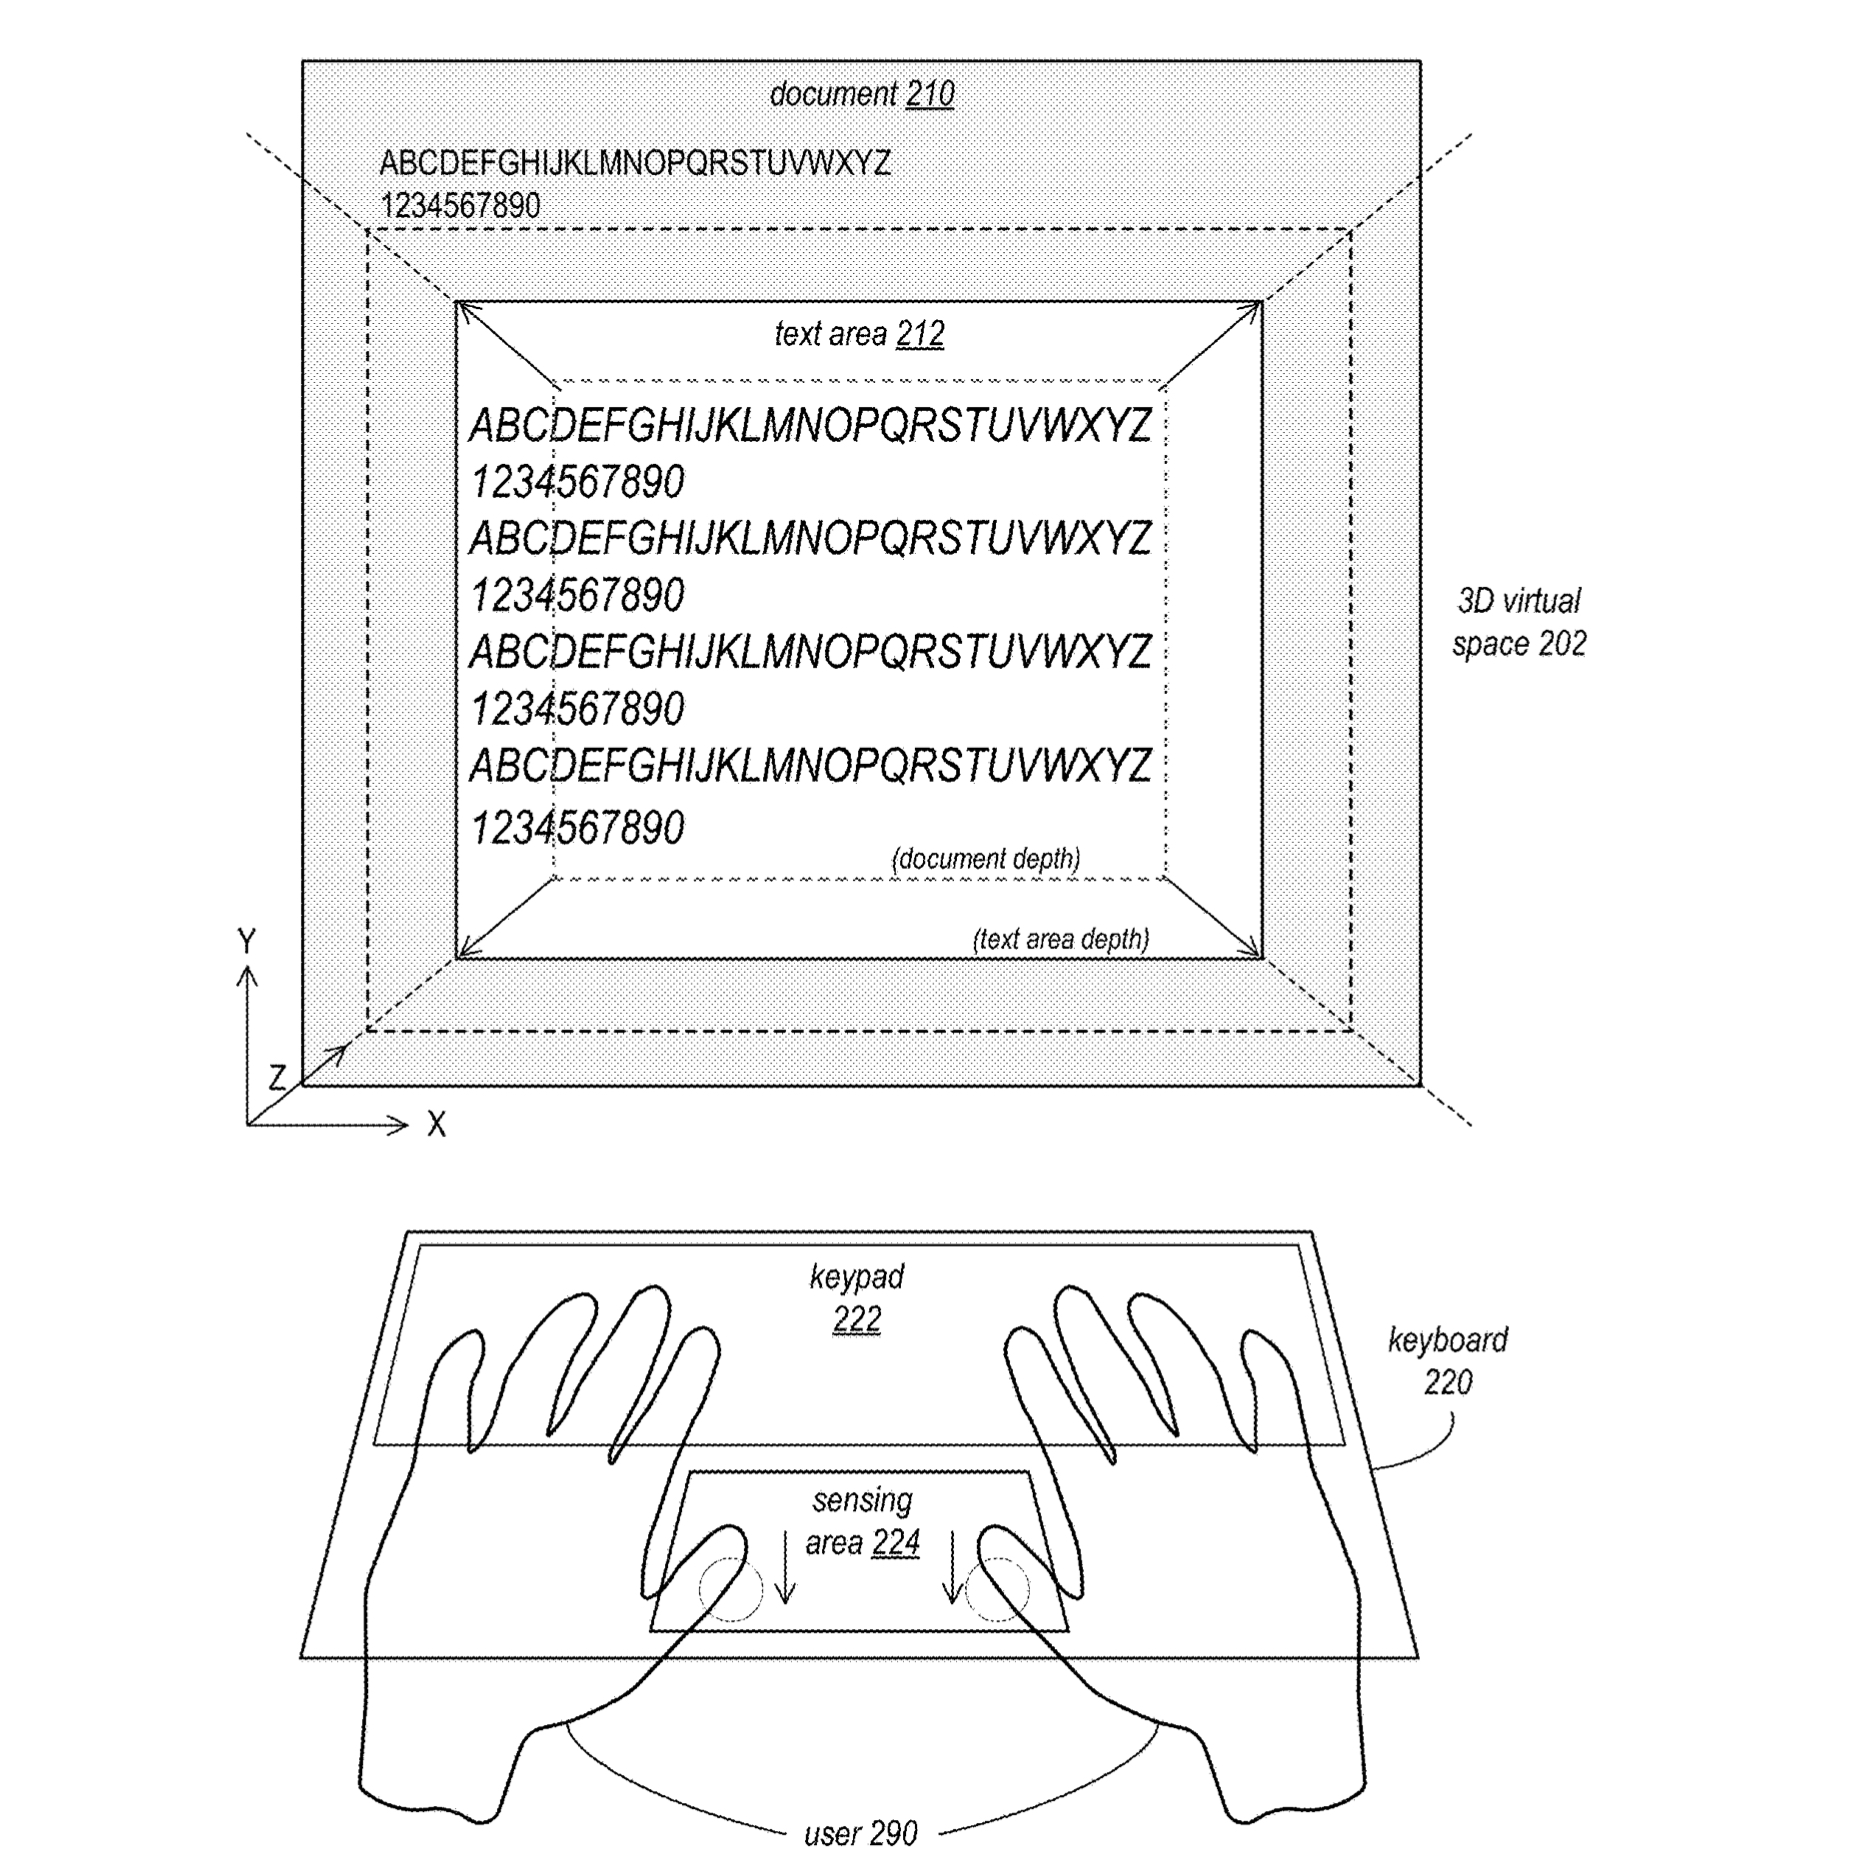 headset patent document software 2